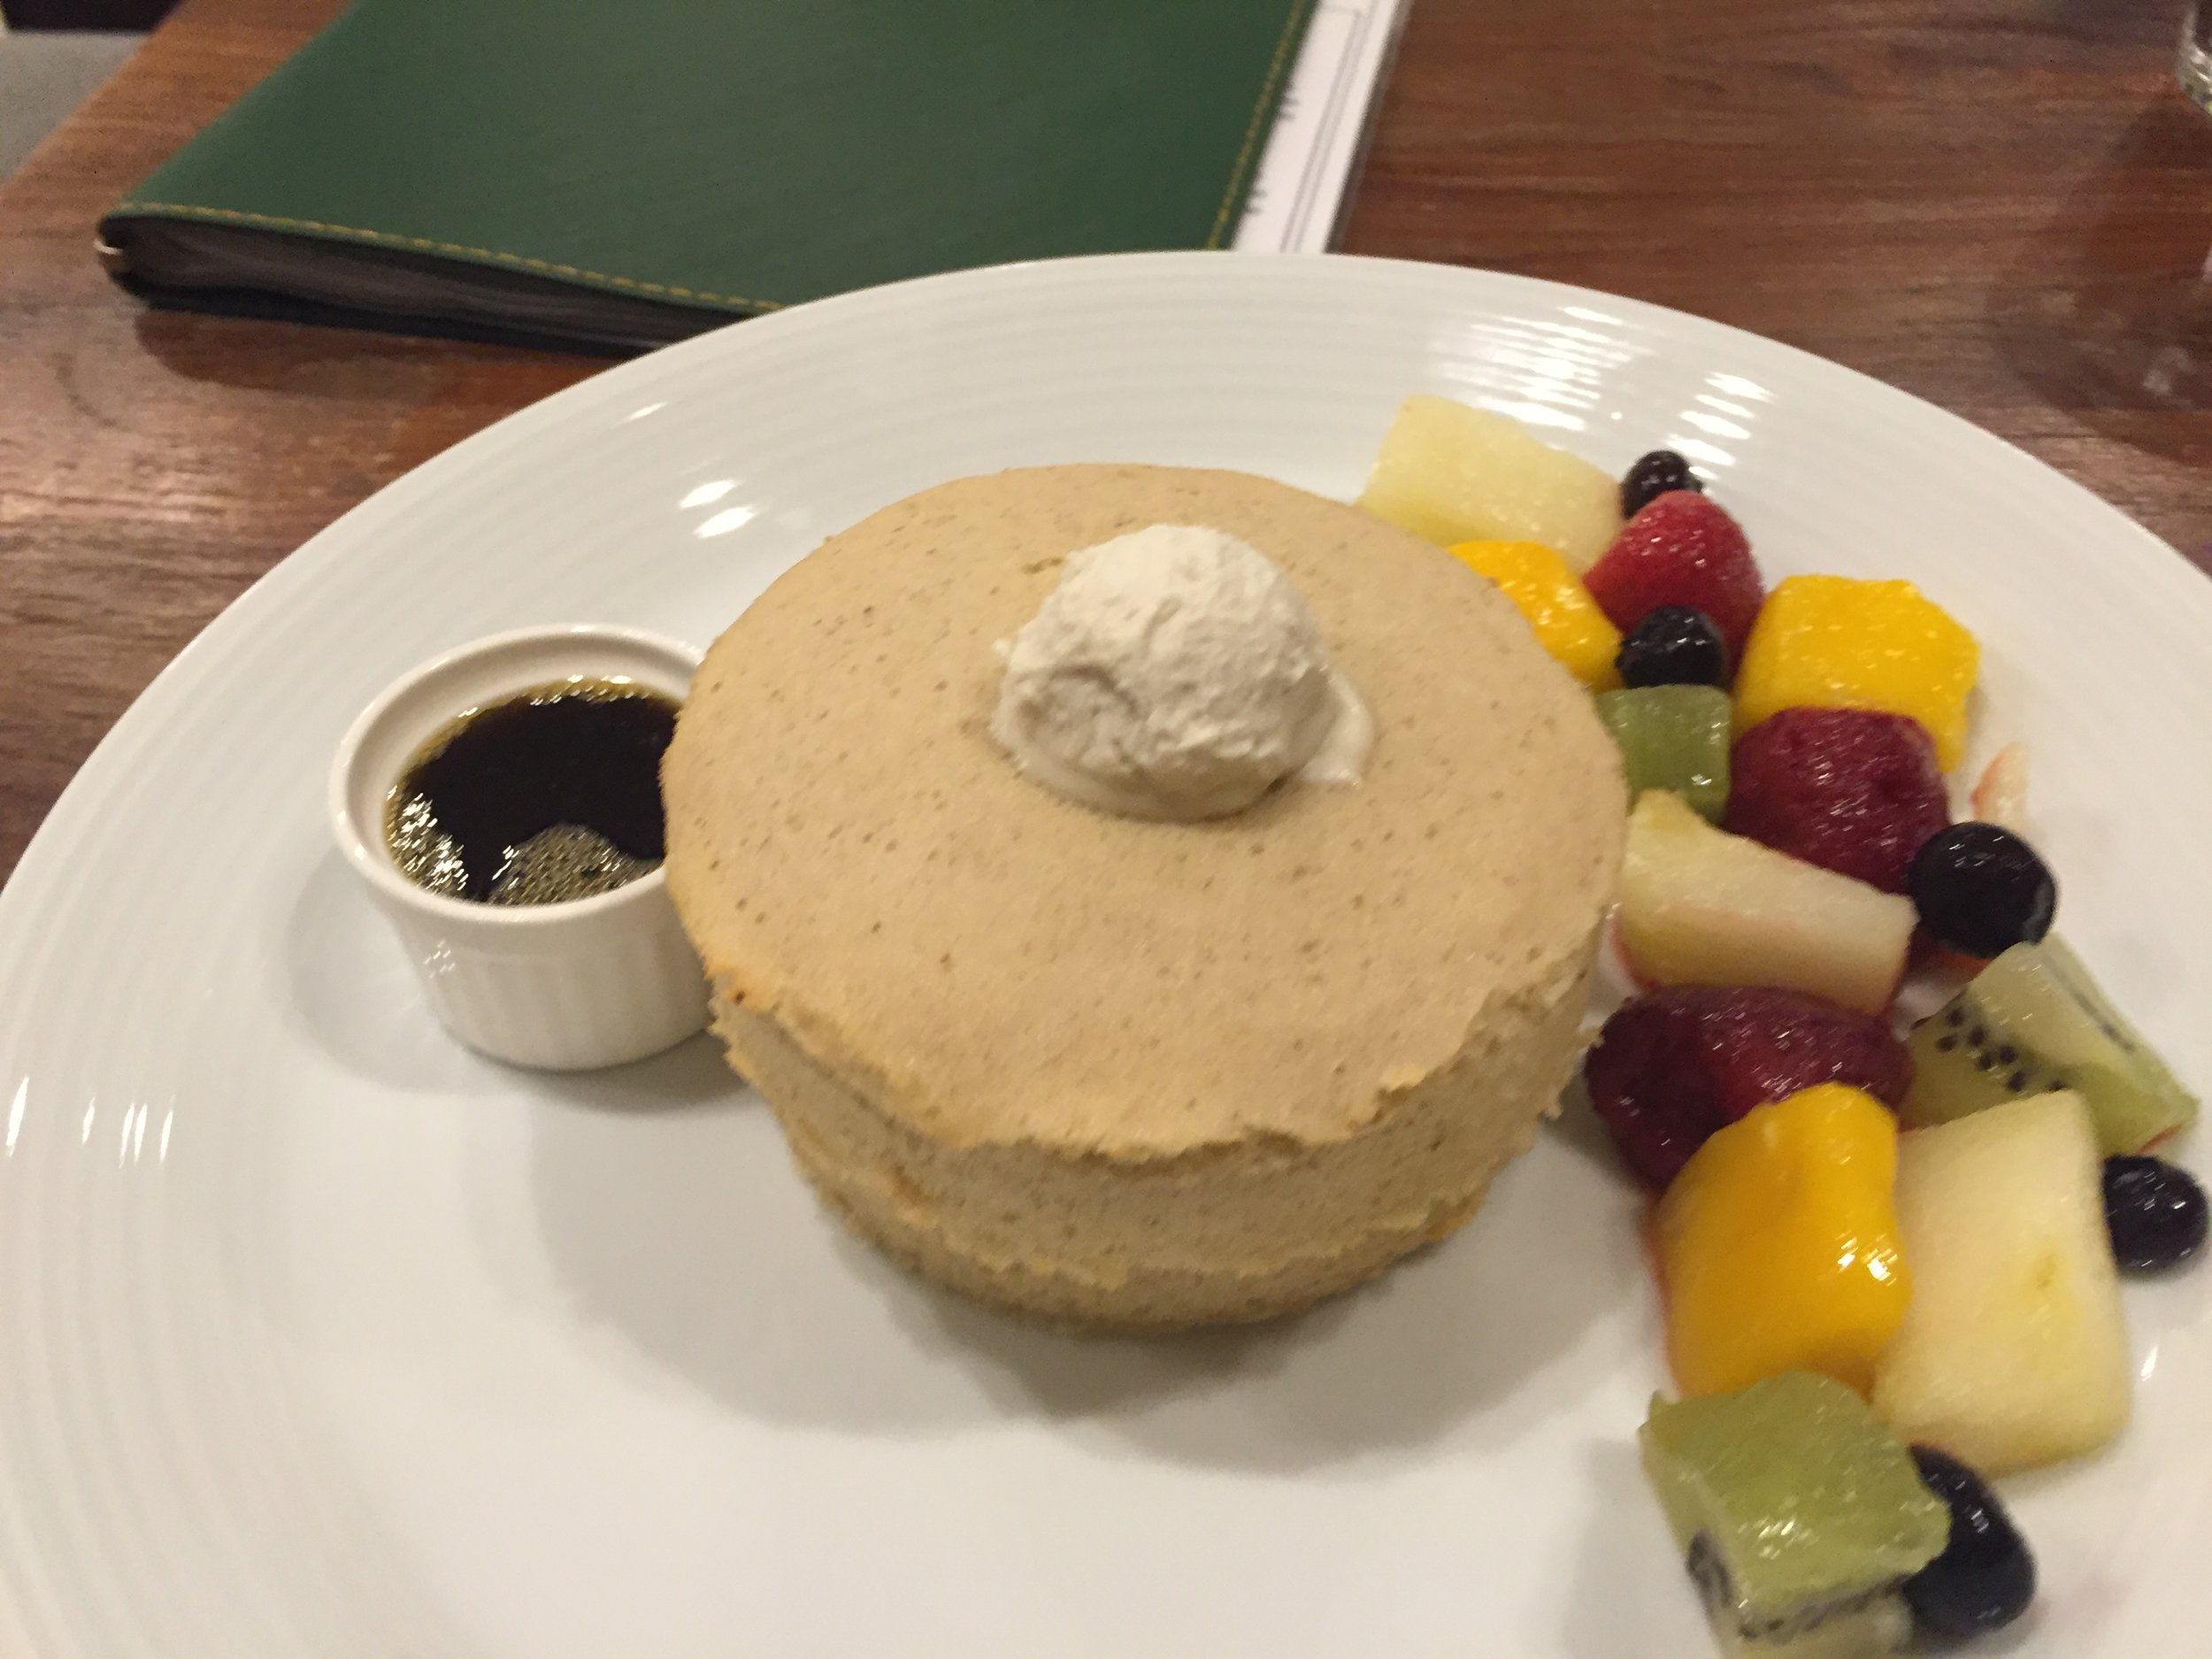 vegan and gluten-free pancakes at Choice Cafe in Kyoto Japan